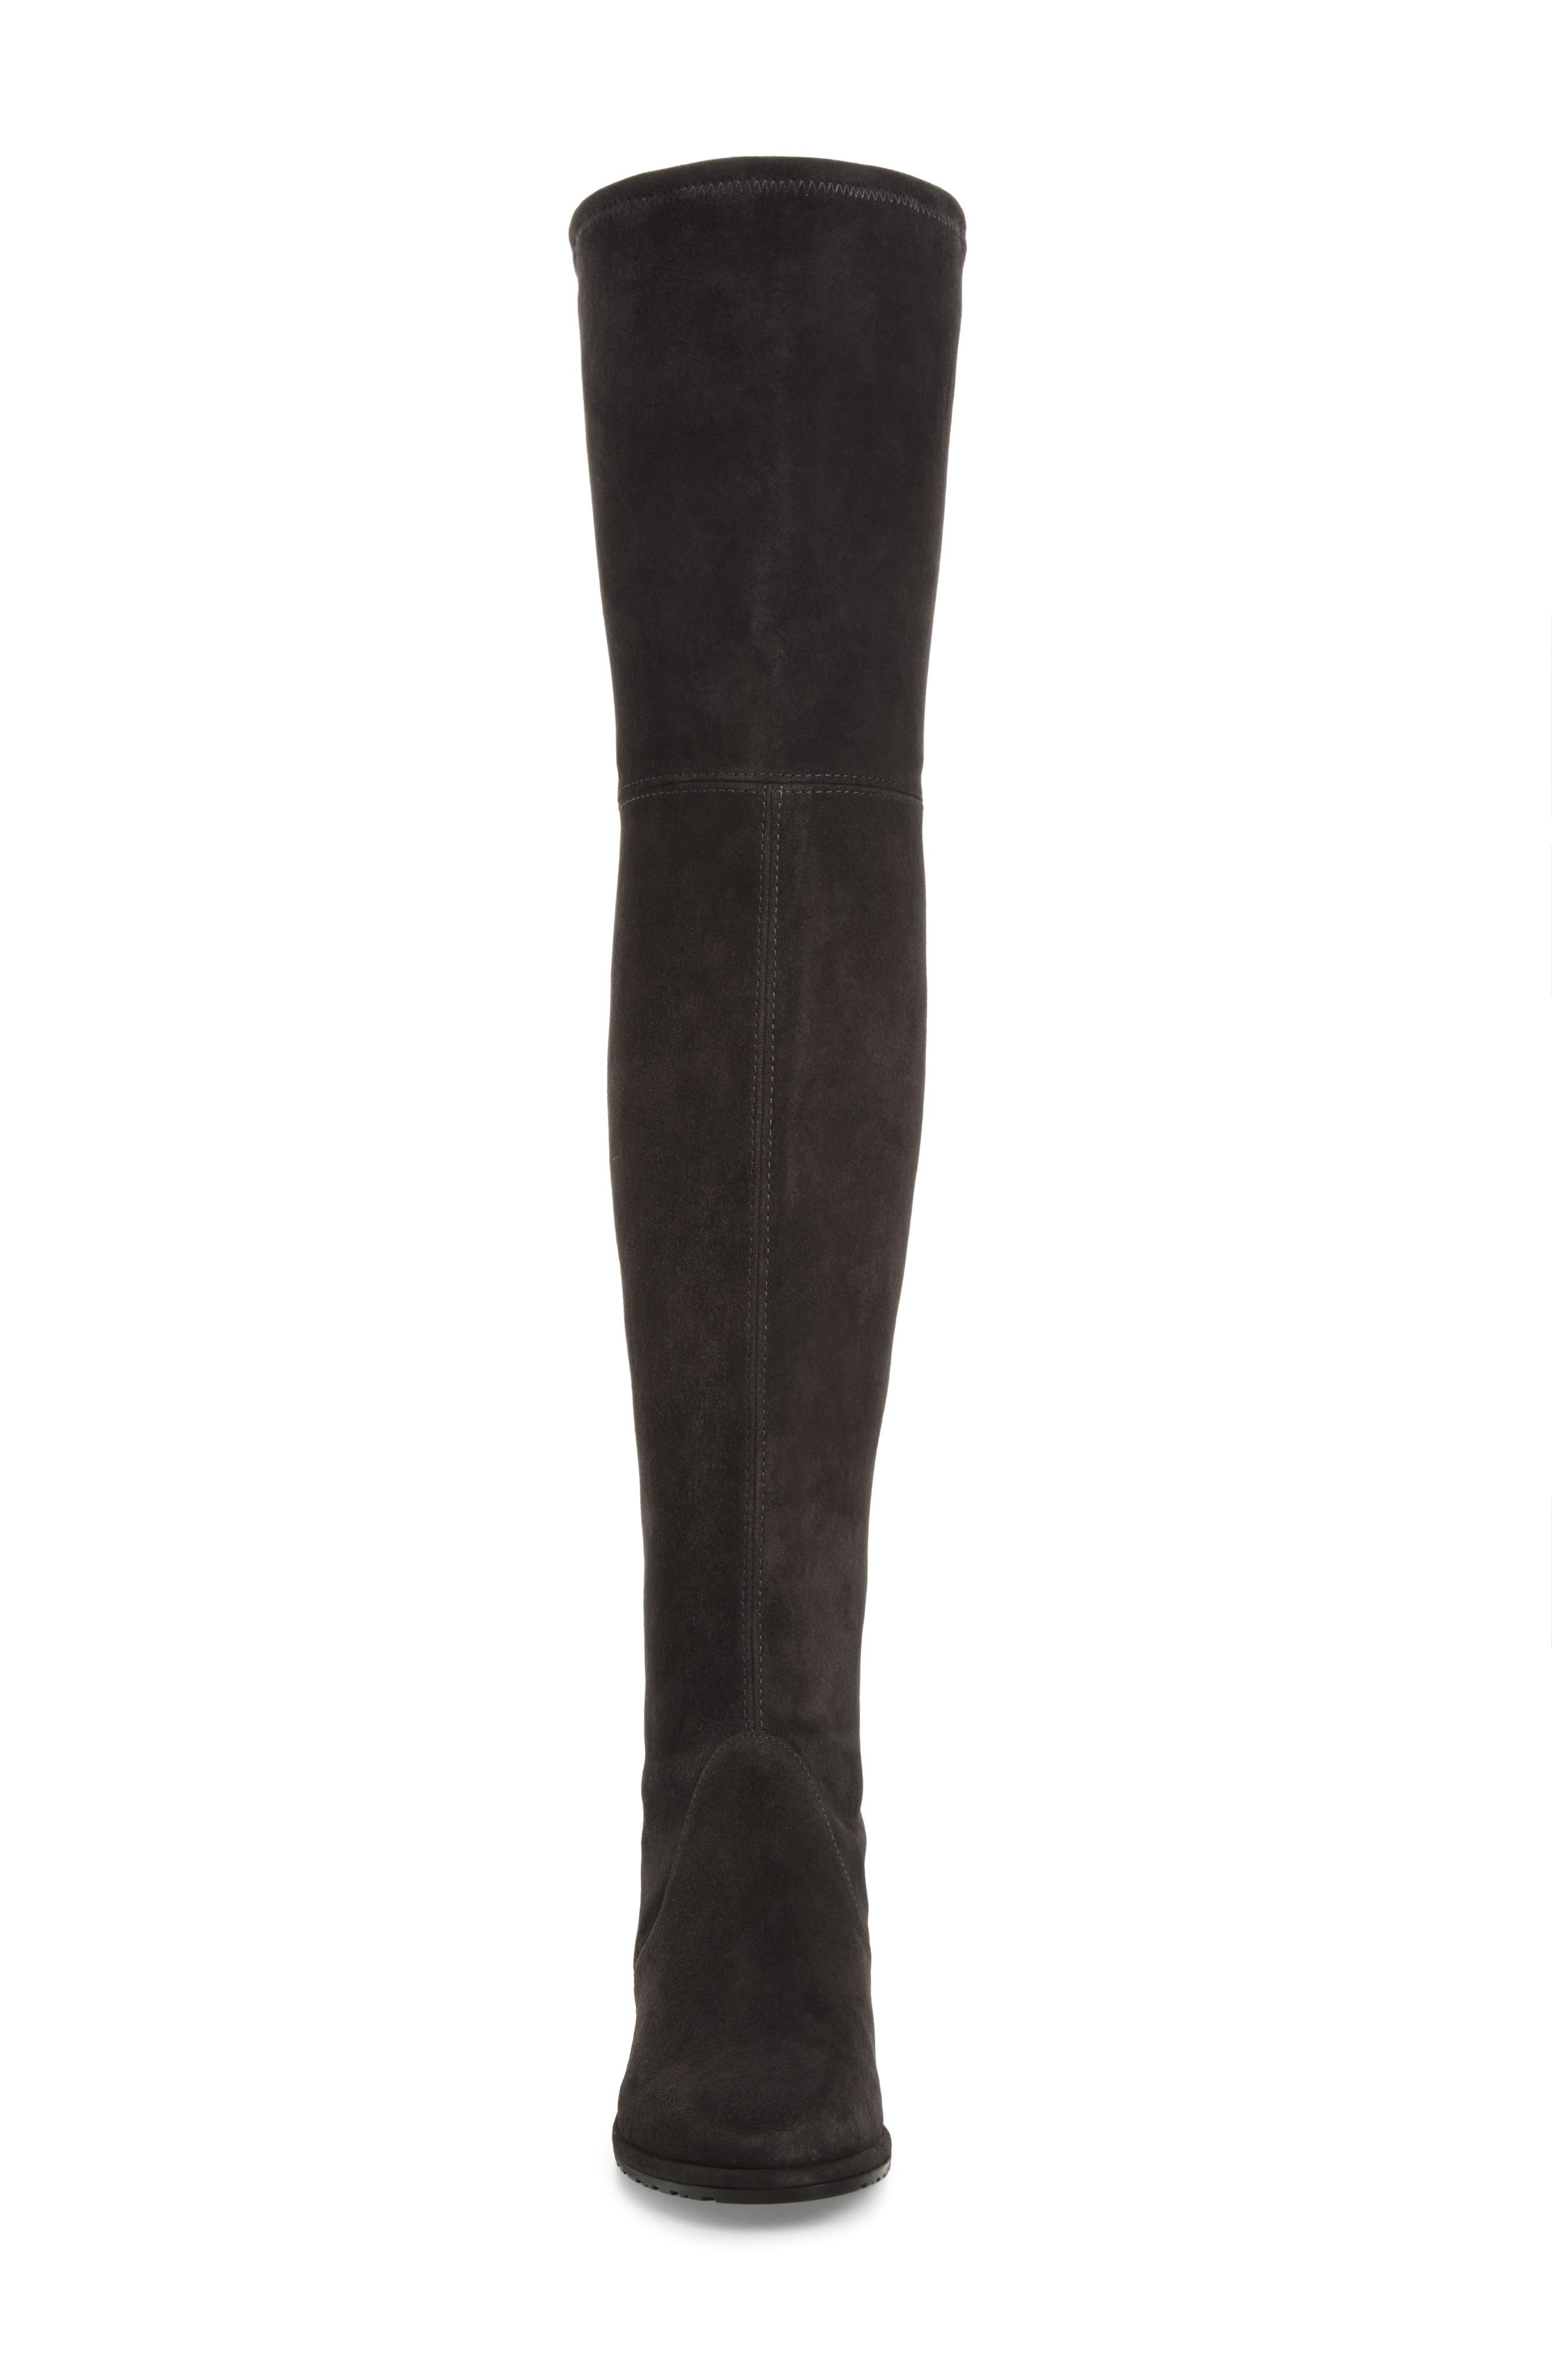 'Lowland' Over the Knee Boot,                             Alternate thumbnail 4, color,                             ASPHALT SUEDE